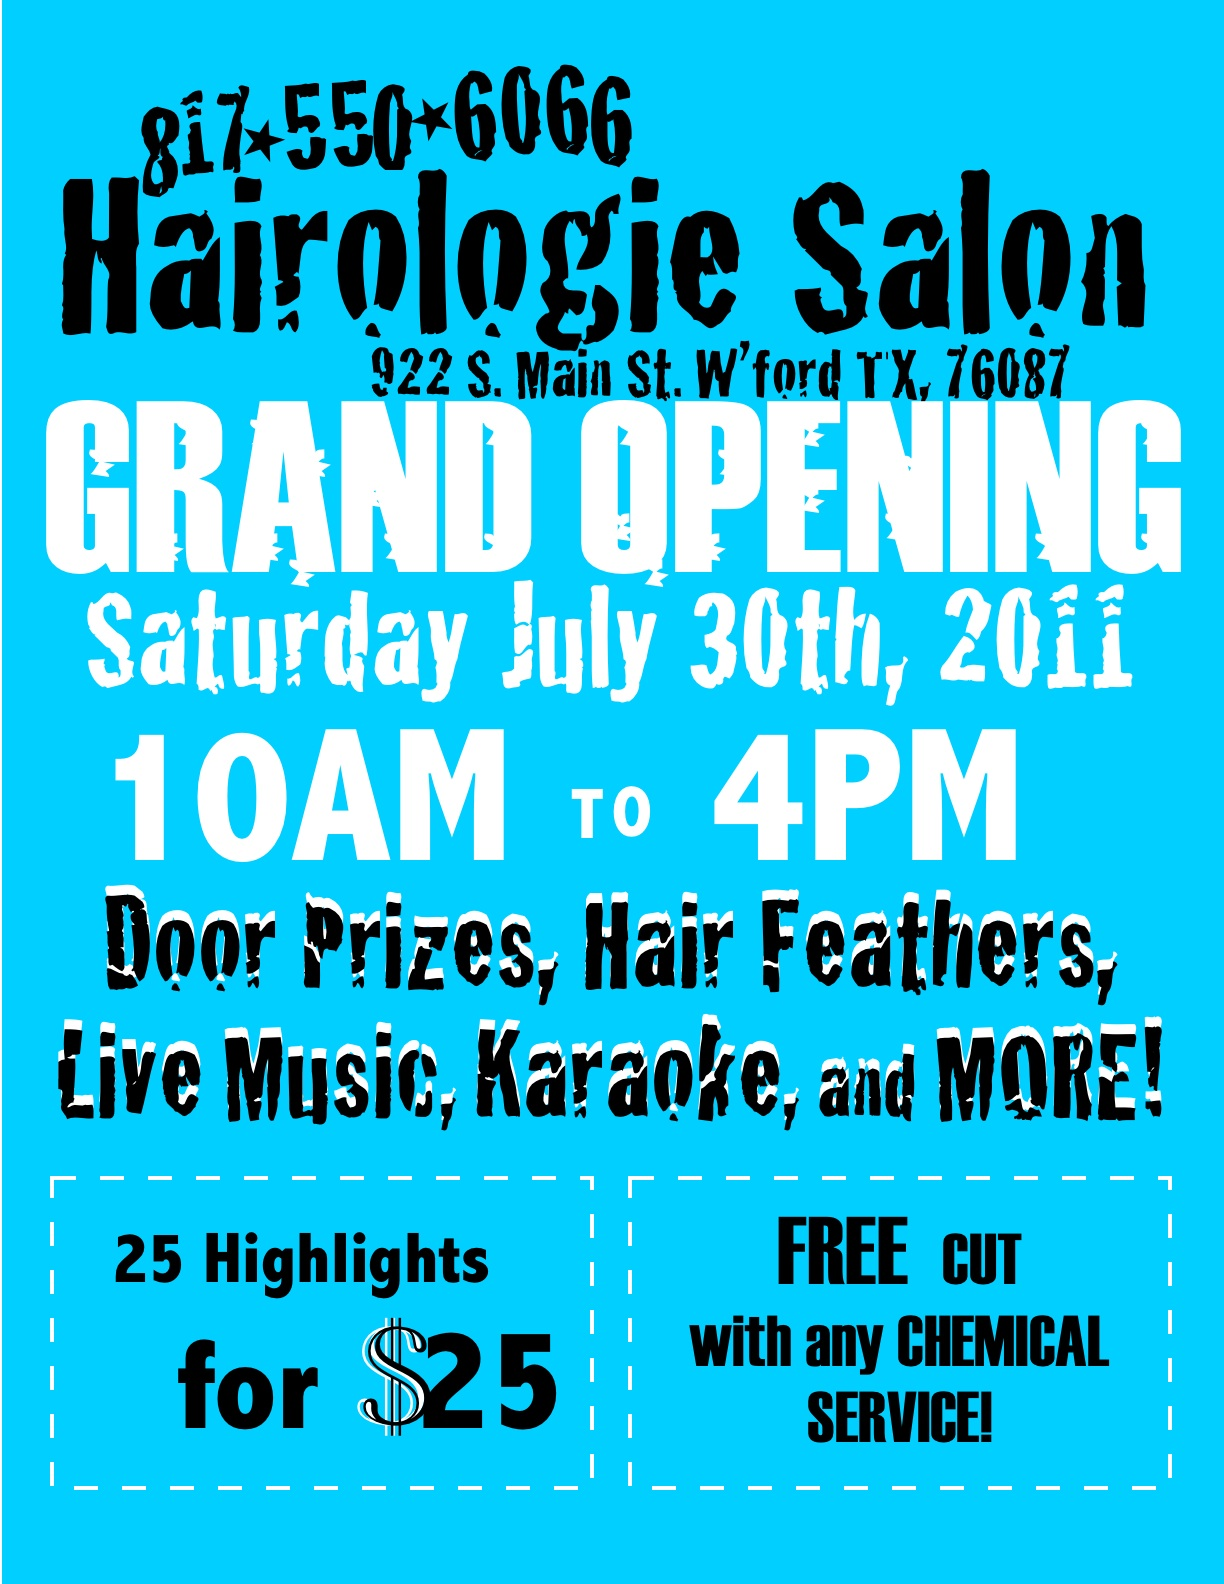 Hair Salon Grand Opening Flyer http://hawaiidermatology.com/grand/grand-opening-hair-salon-flyers.htm